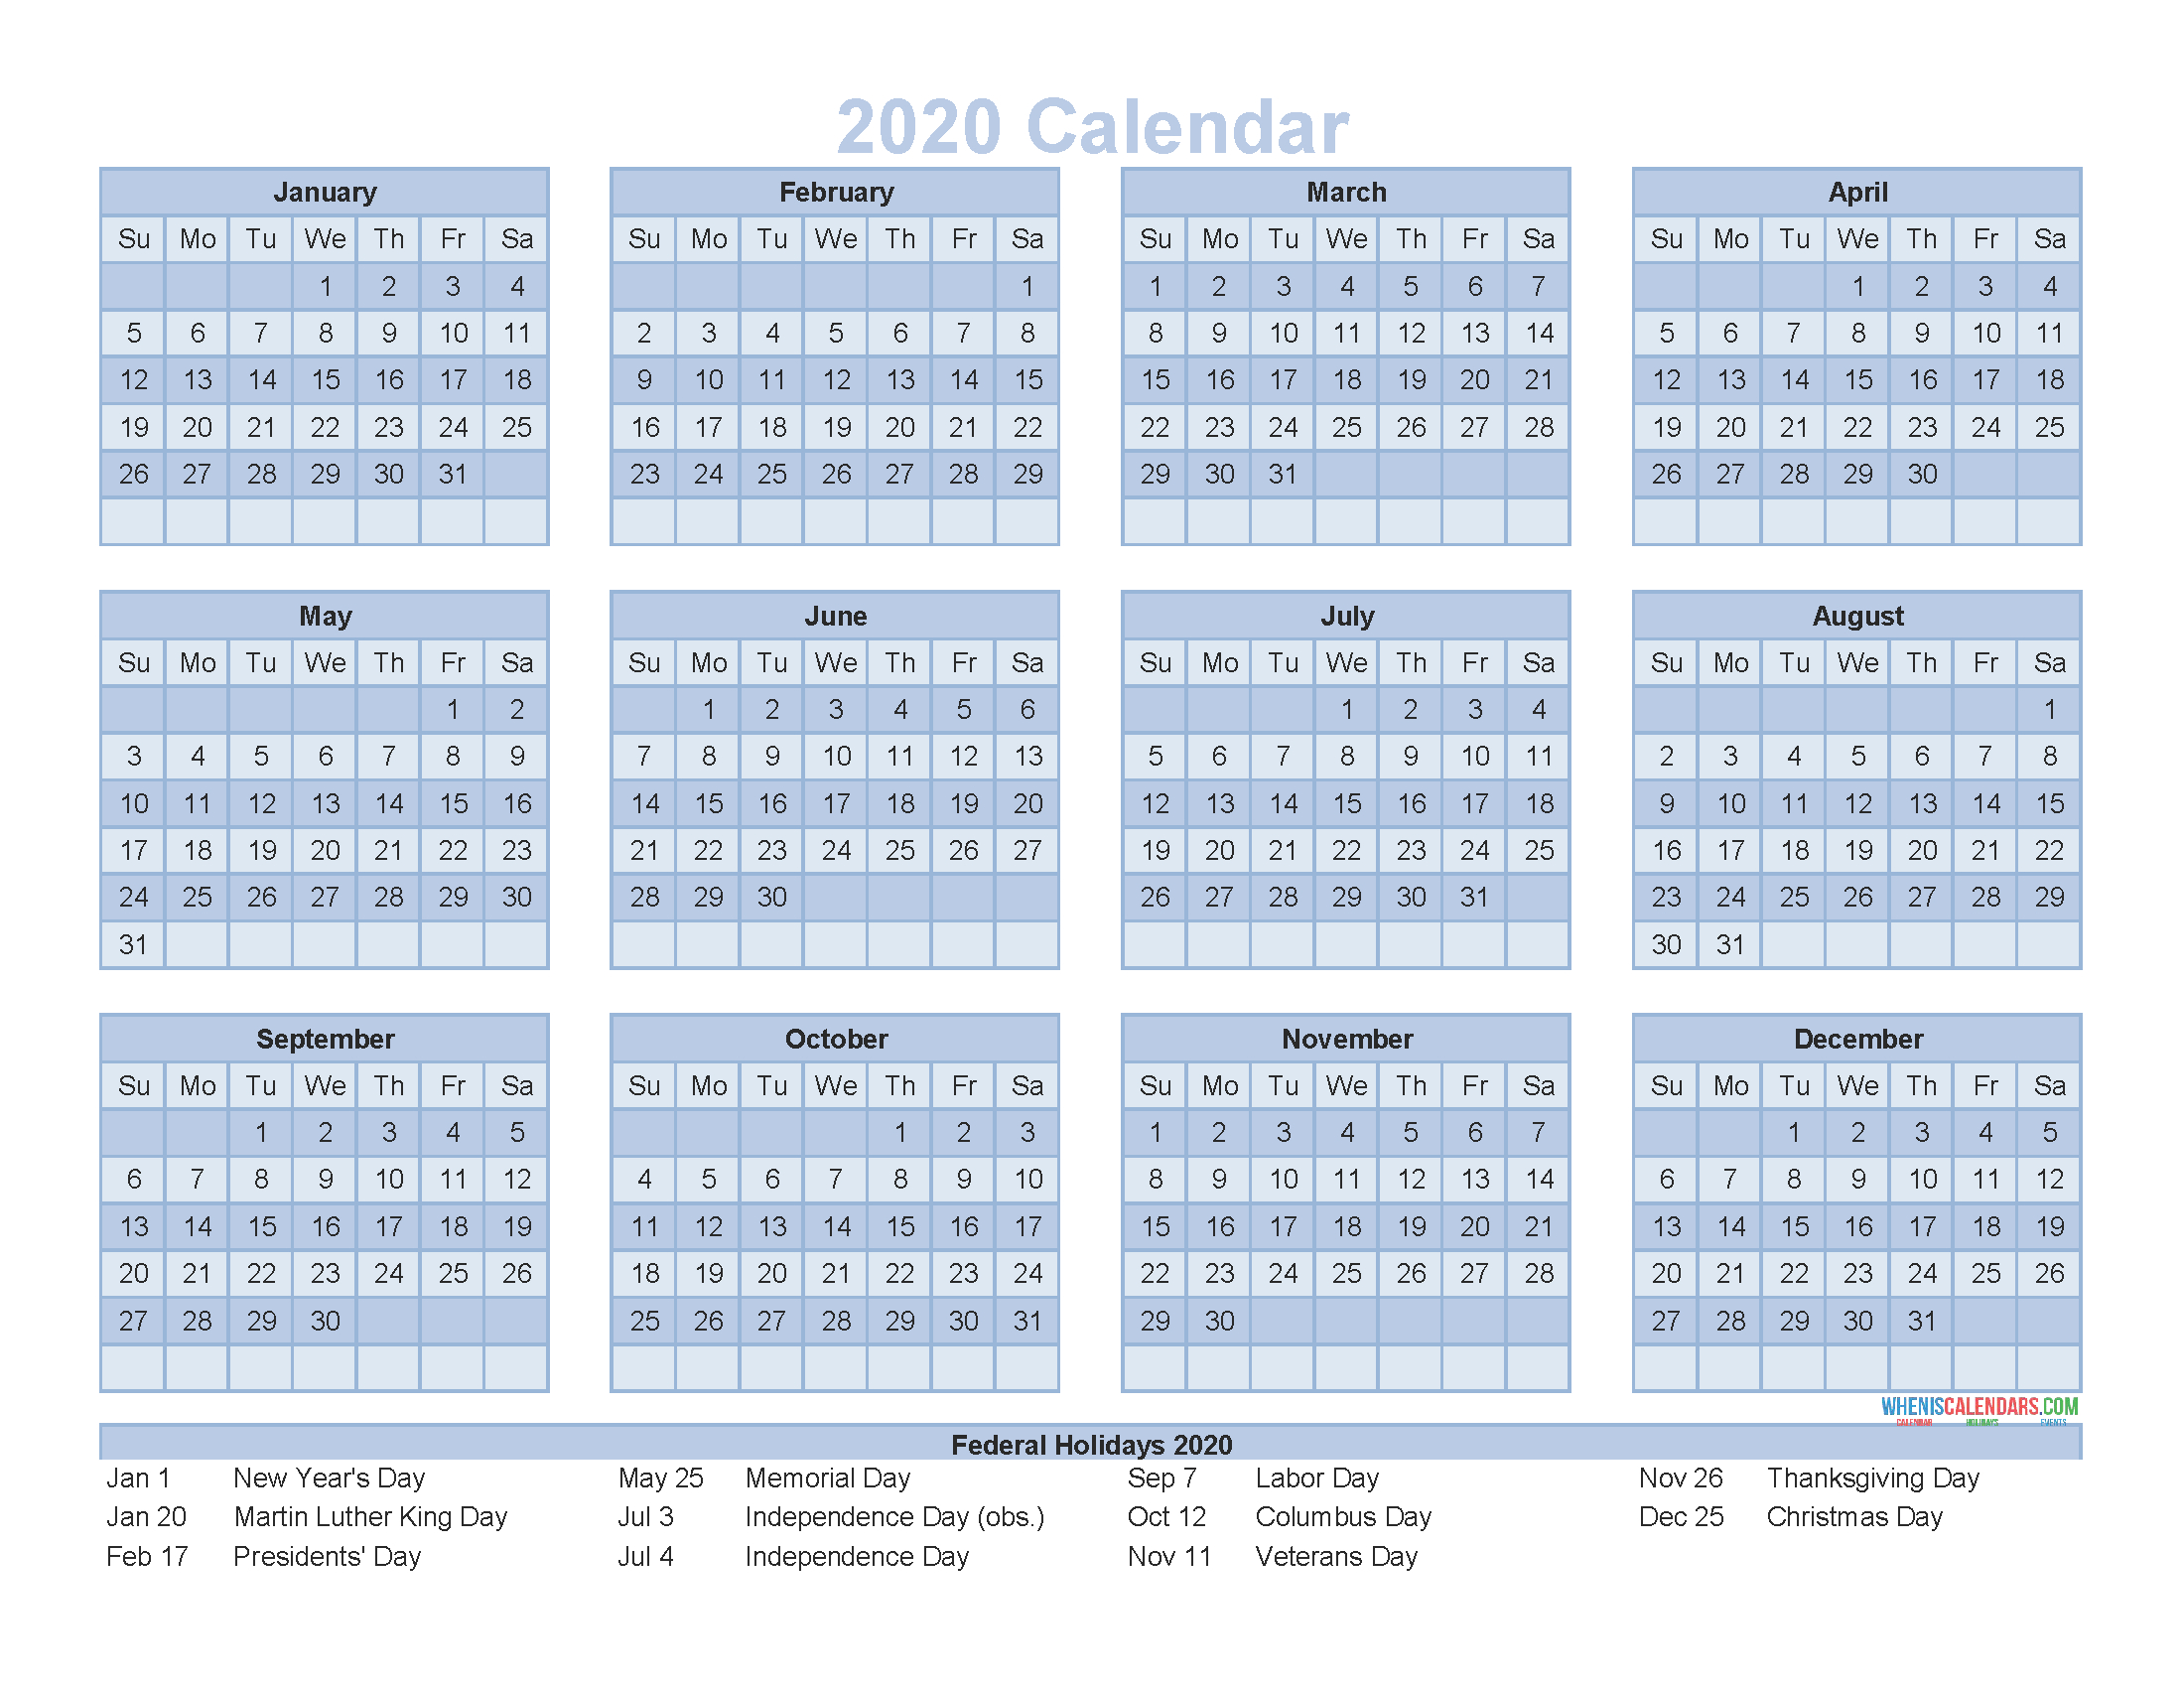 12 Month Calendar On One Page 2020 Printable Pdf, Excel, Image Printable And Editable 12 Month Calendars